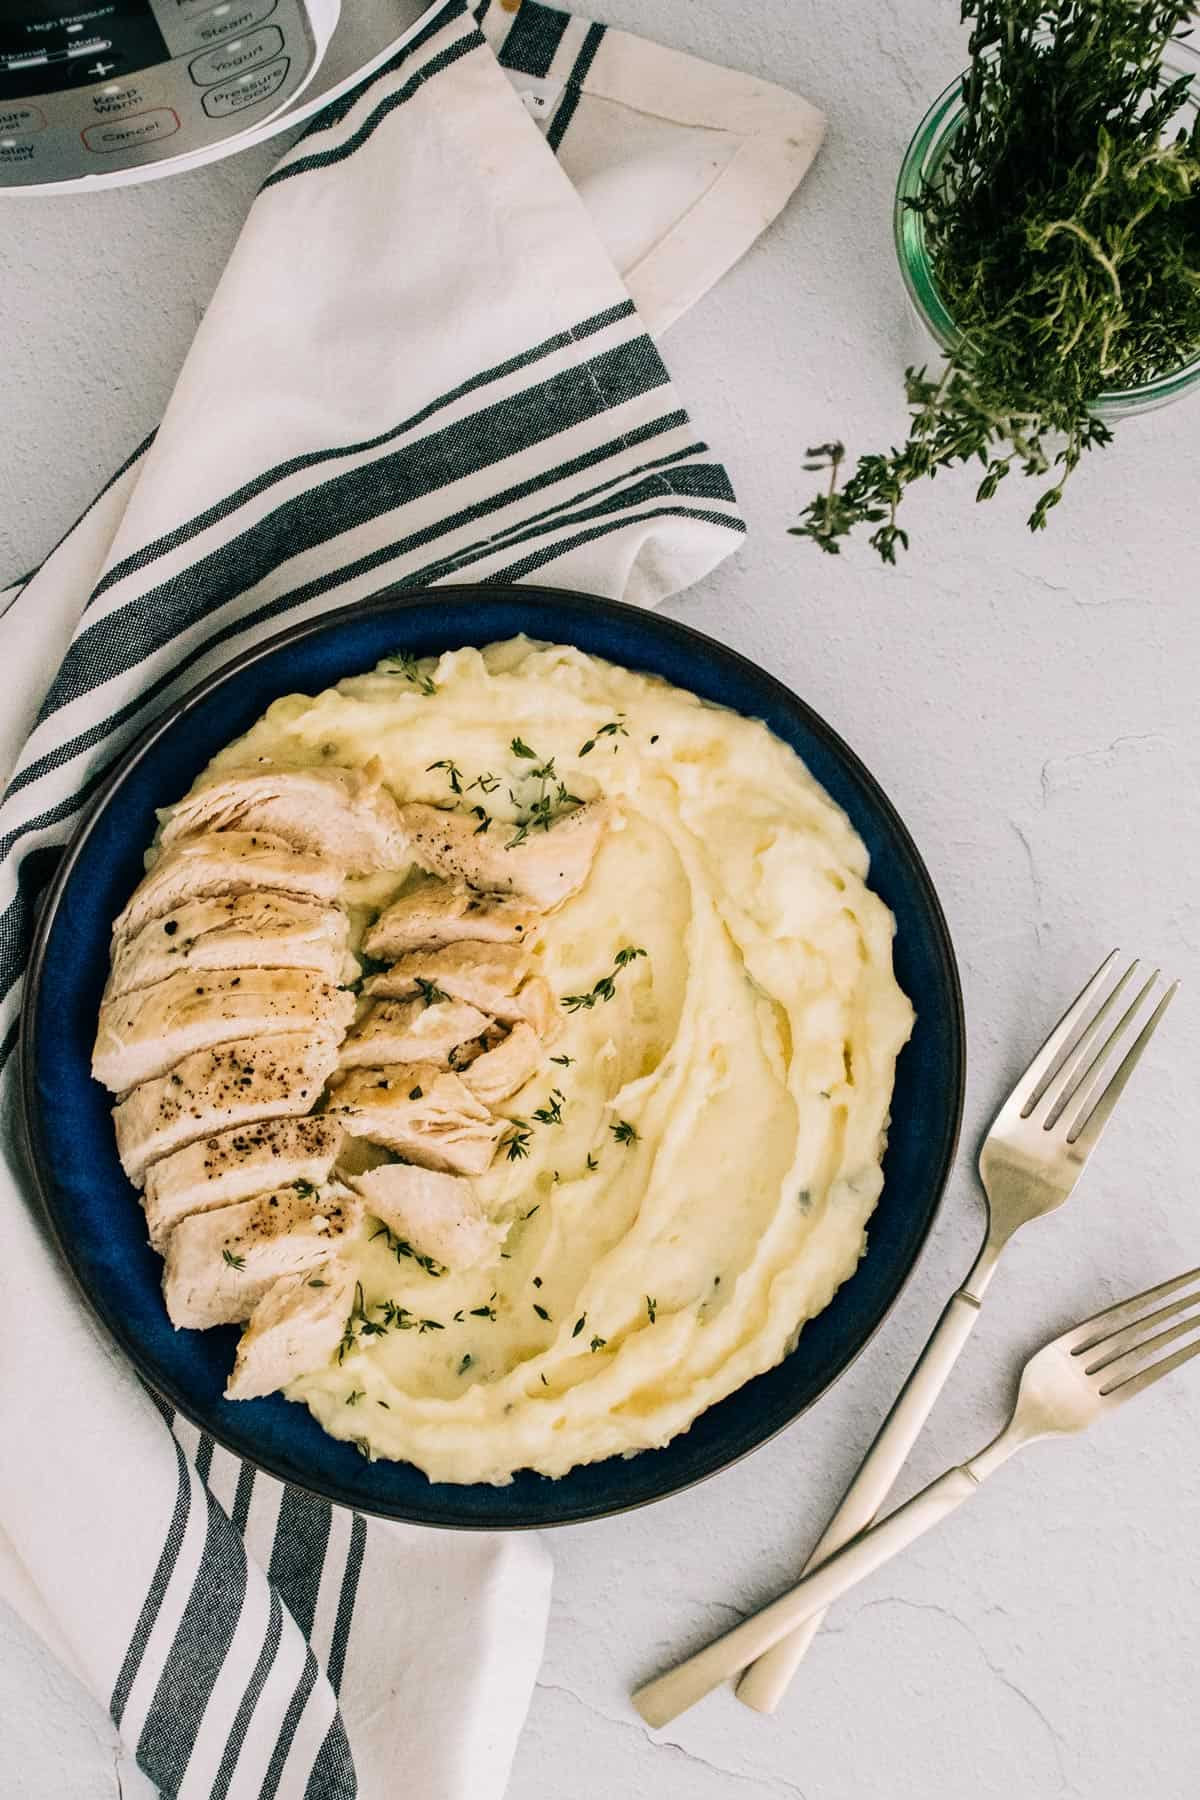 Mashed potatoes and sliced garlic butter chicken on a blue plate